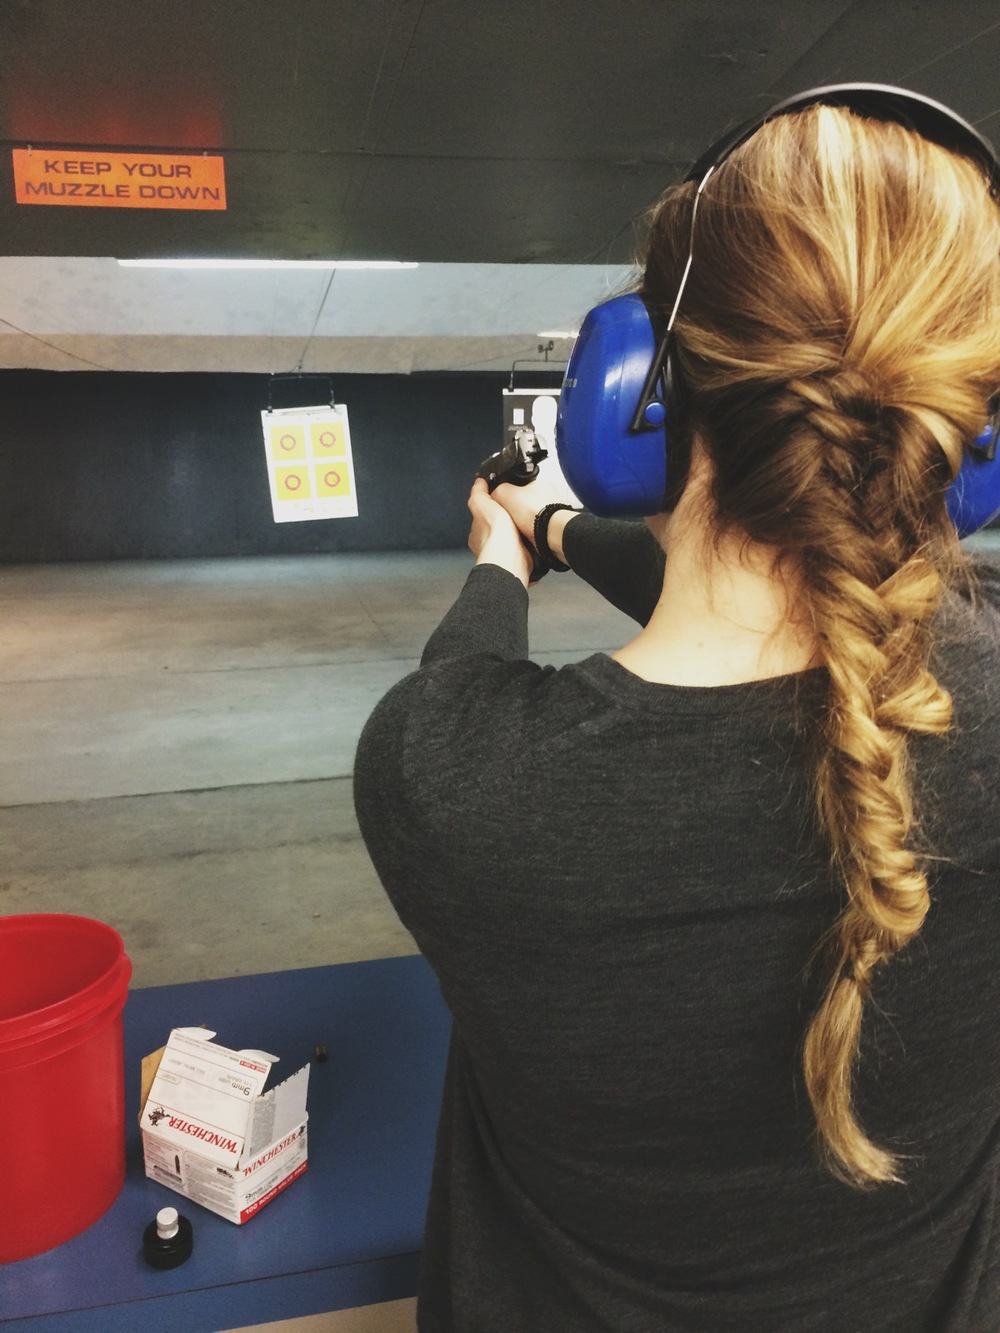 They all did a fine job of teaching me how to shoot a gun, and while I was nervous and scared, I did it!